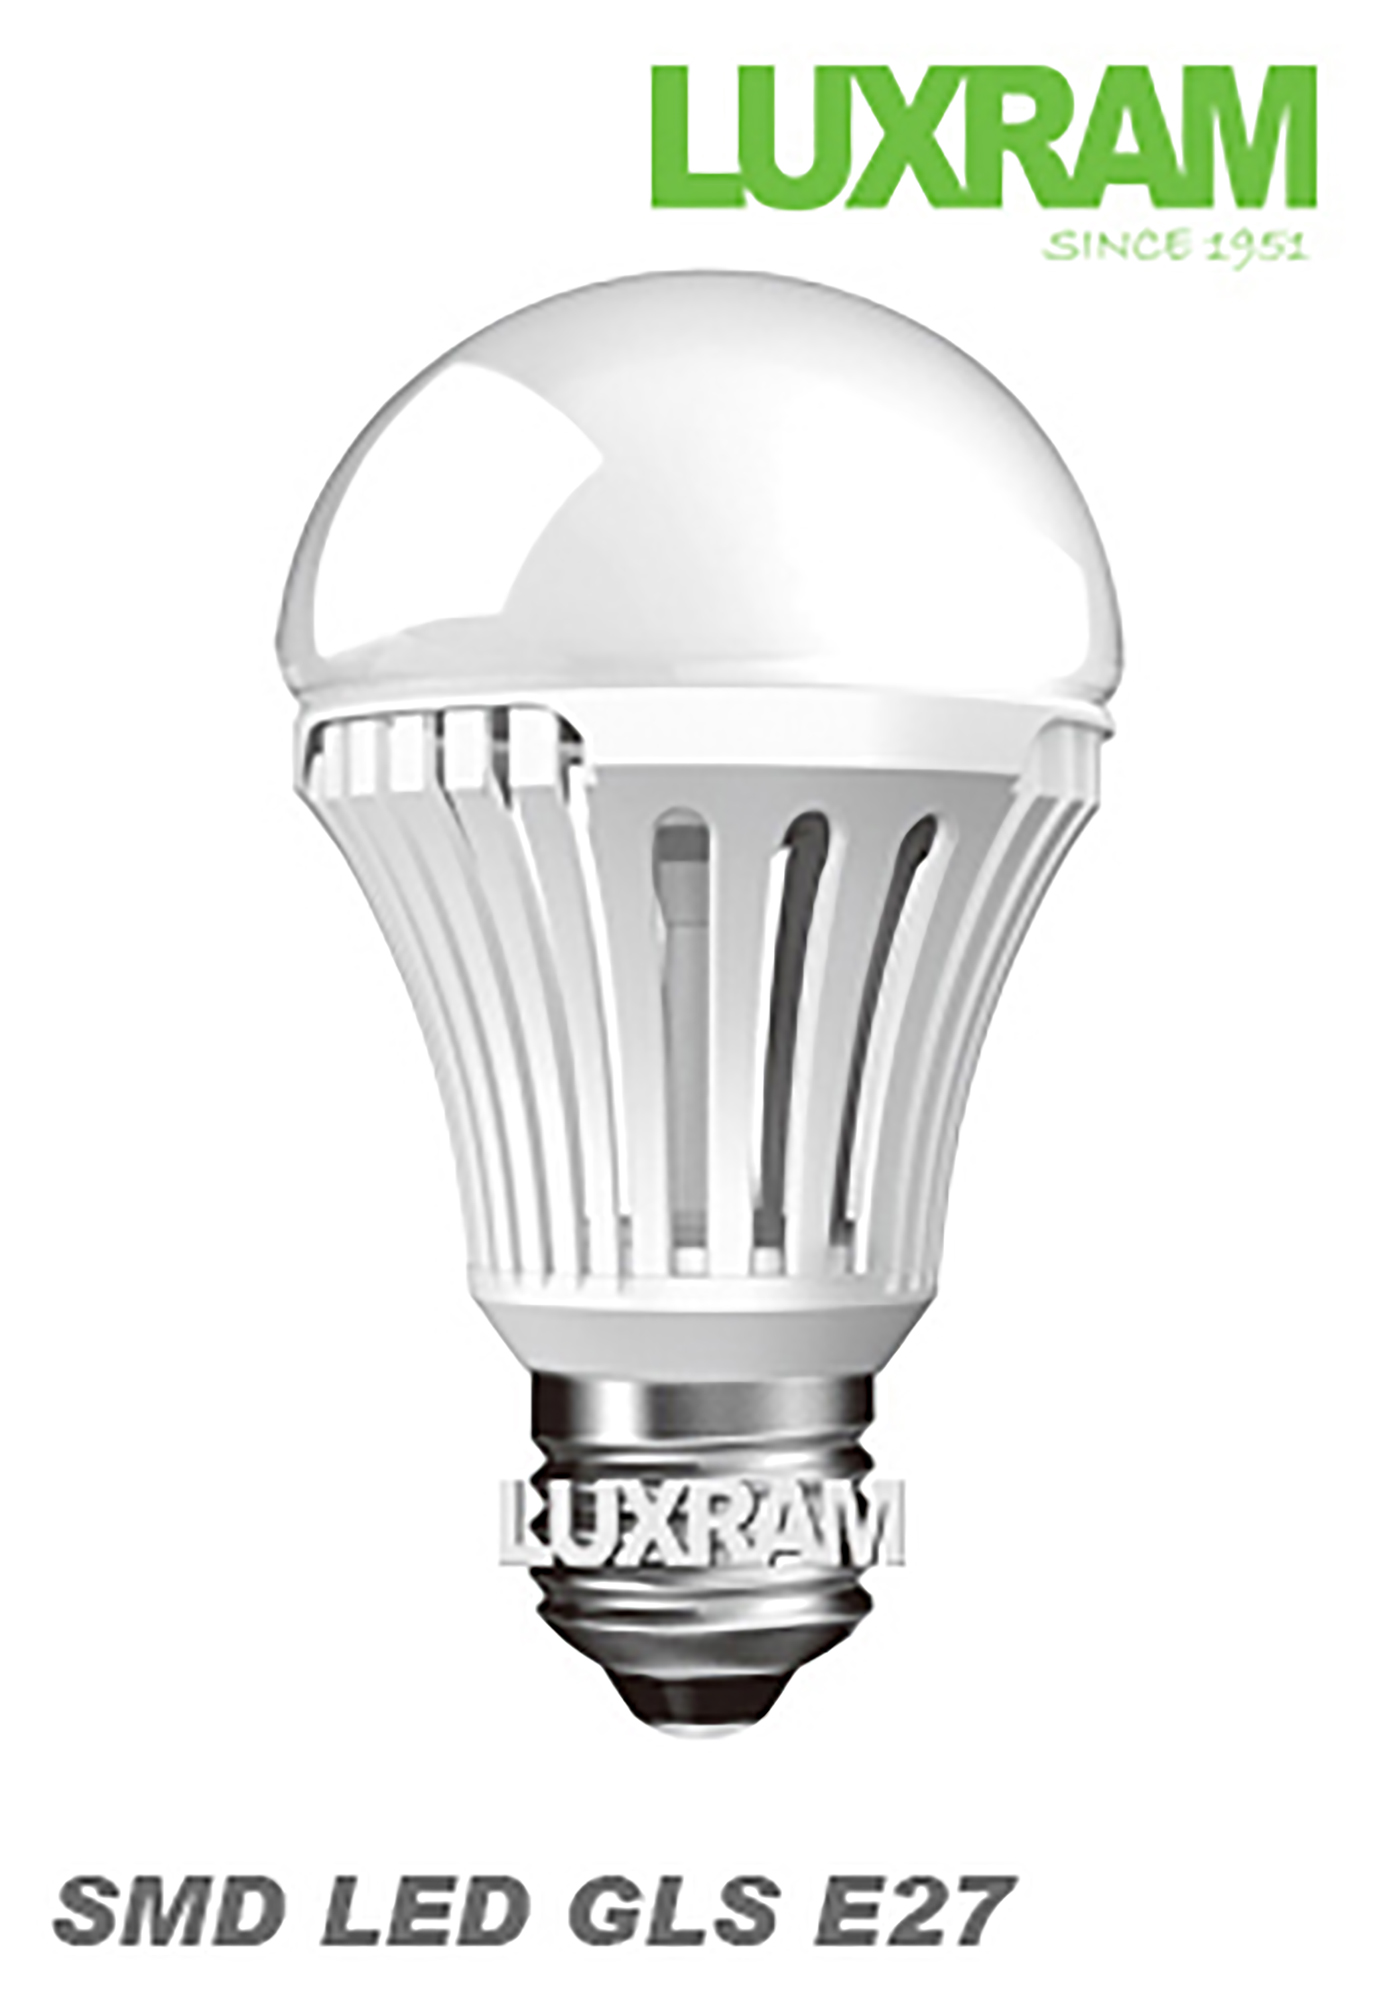 Power SMD LED Lamps Luxram Candle